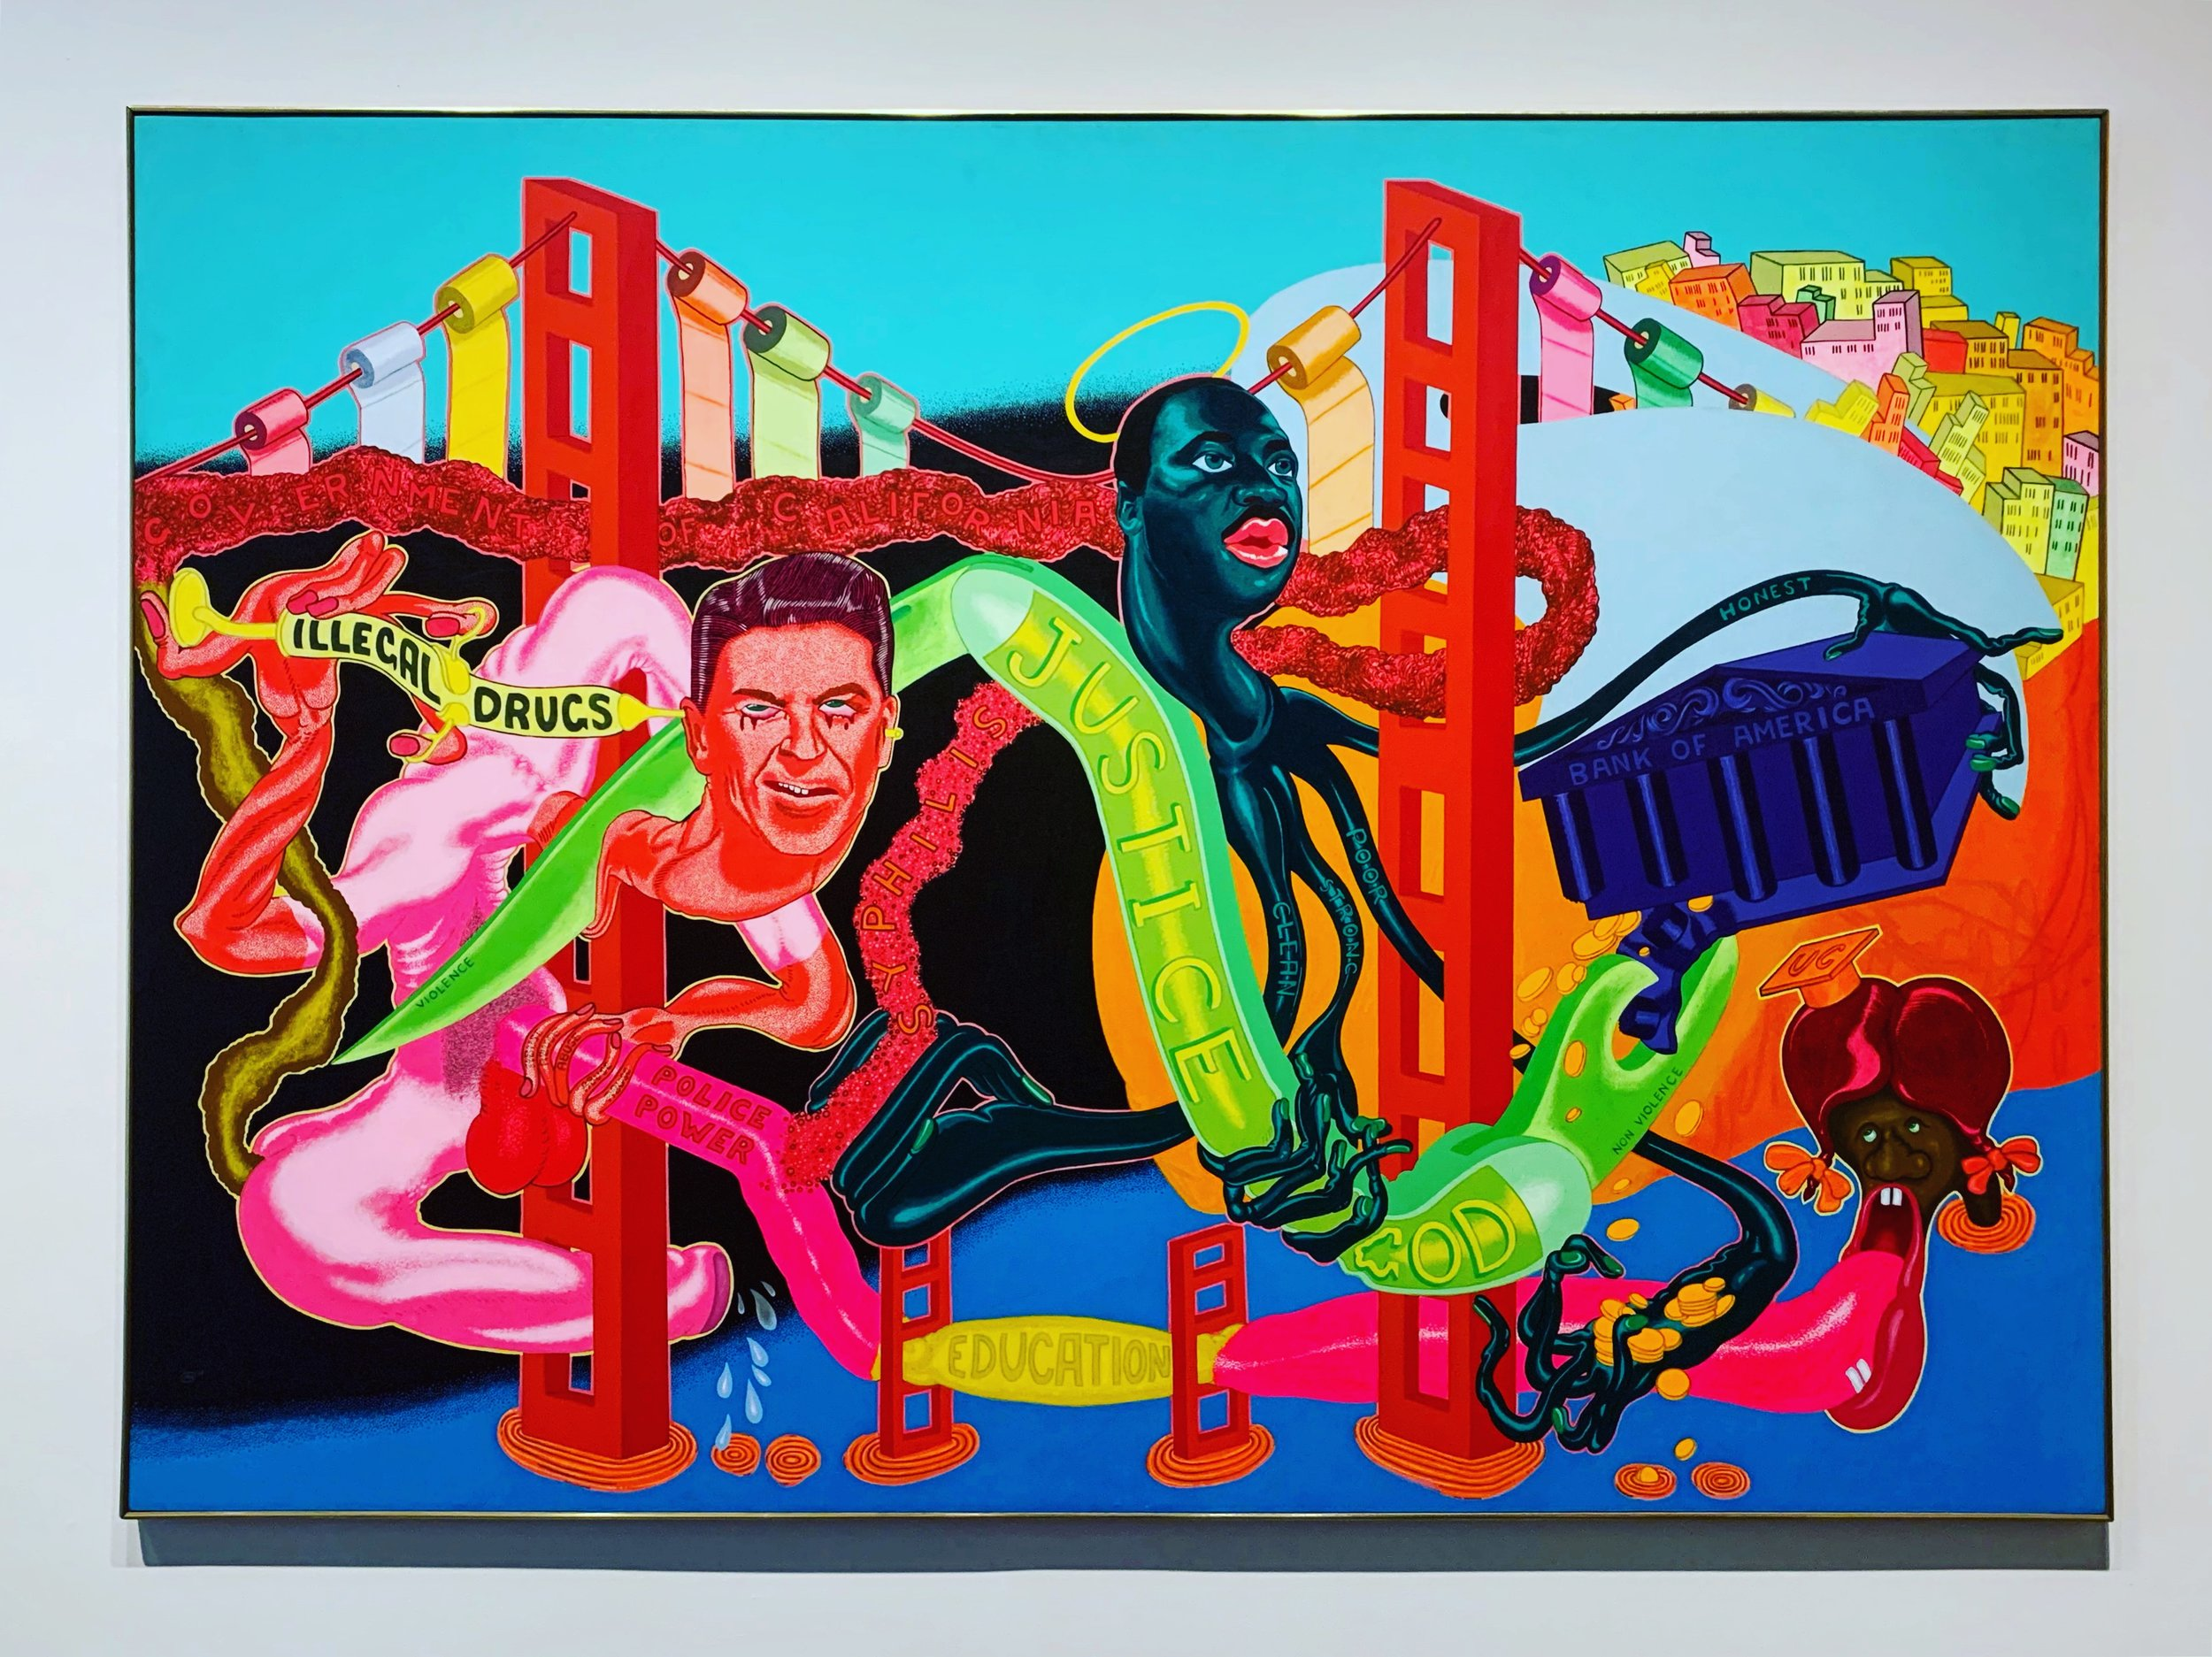 """Peter Saul Government of California 1969 Acrylic on canvas   """"Saul's kaleidoscopic depiction of tangled protuberances and bulbous limbs evokes a period when protests against the Vietnam War and for Civil Rights consumed much of the country, resulting in sometimes violent police and military reprisals. The artist depicts these seemingly intractable conflicts as the climax of a monster movie. Martin Luther King, Jr., assassinated the previous year, appears as a haloed octopus and wields a large switchblade, illustrating a central dilemma for the political Left of violence versus non-violent resistance. Saul portrays Ronald Reagan, then the Governor of California, as Frankenstein's monster, with a syringe of illegal drugs protruding from his head. This may reference the conspiracy theory that the right-wing politician's power over the counterculture derived in part from the government's covert inundation of antiwar groups and communities of color with drugs in order to neutralize their opposition."""""""